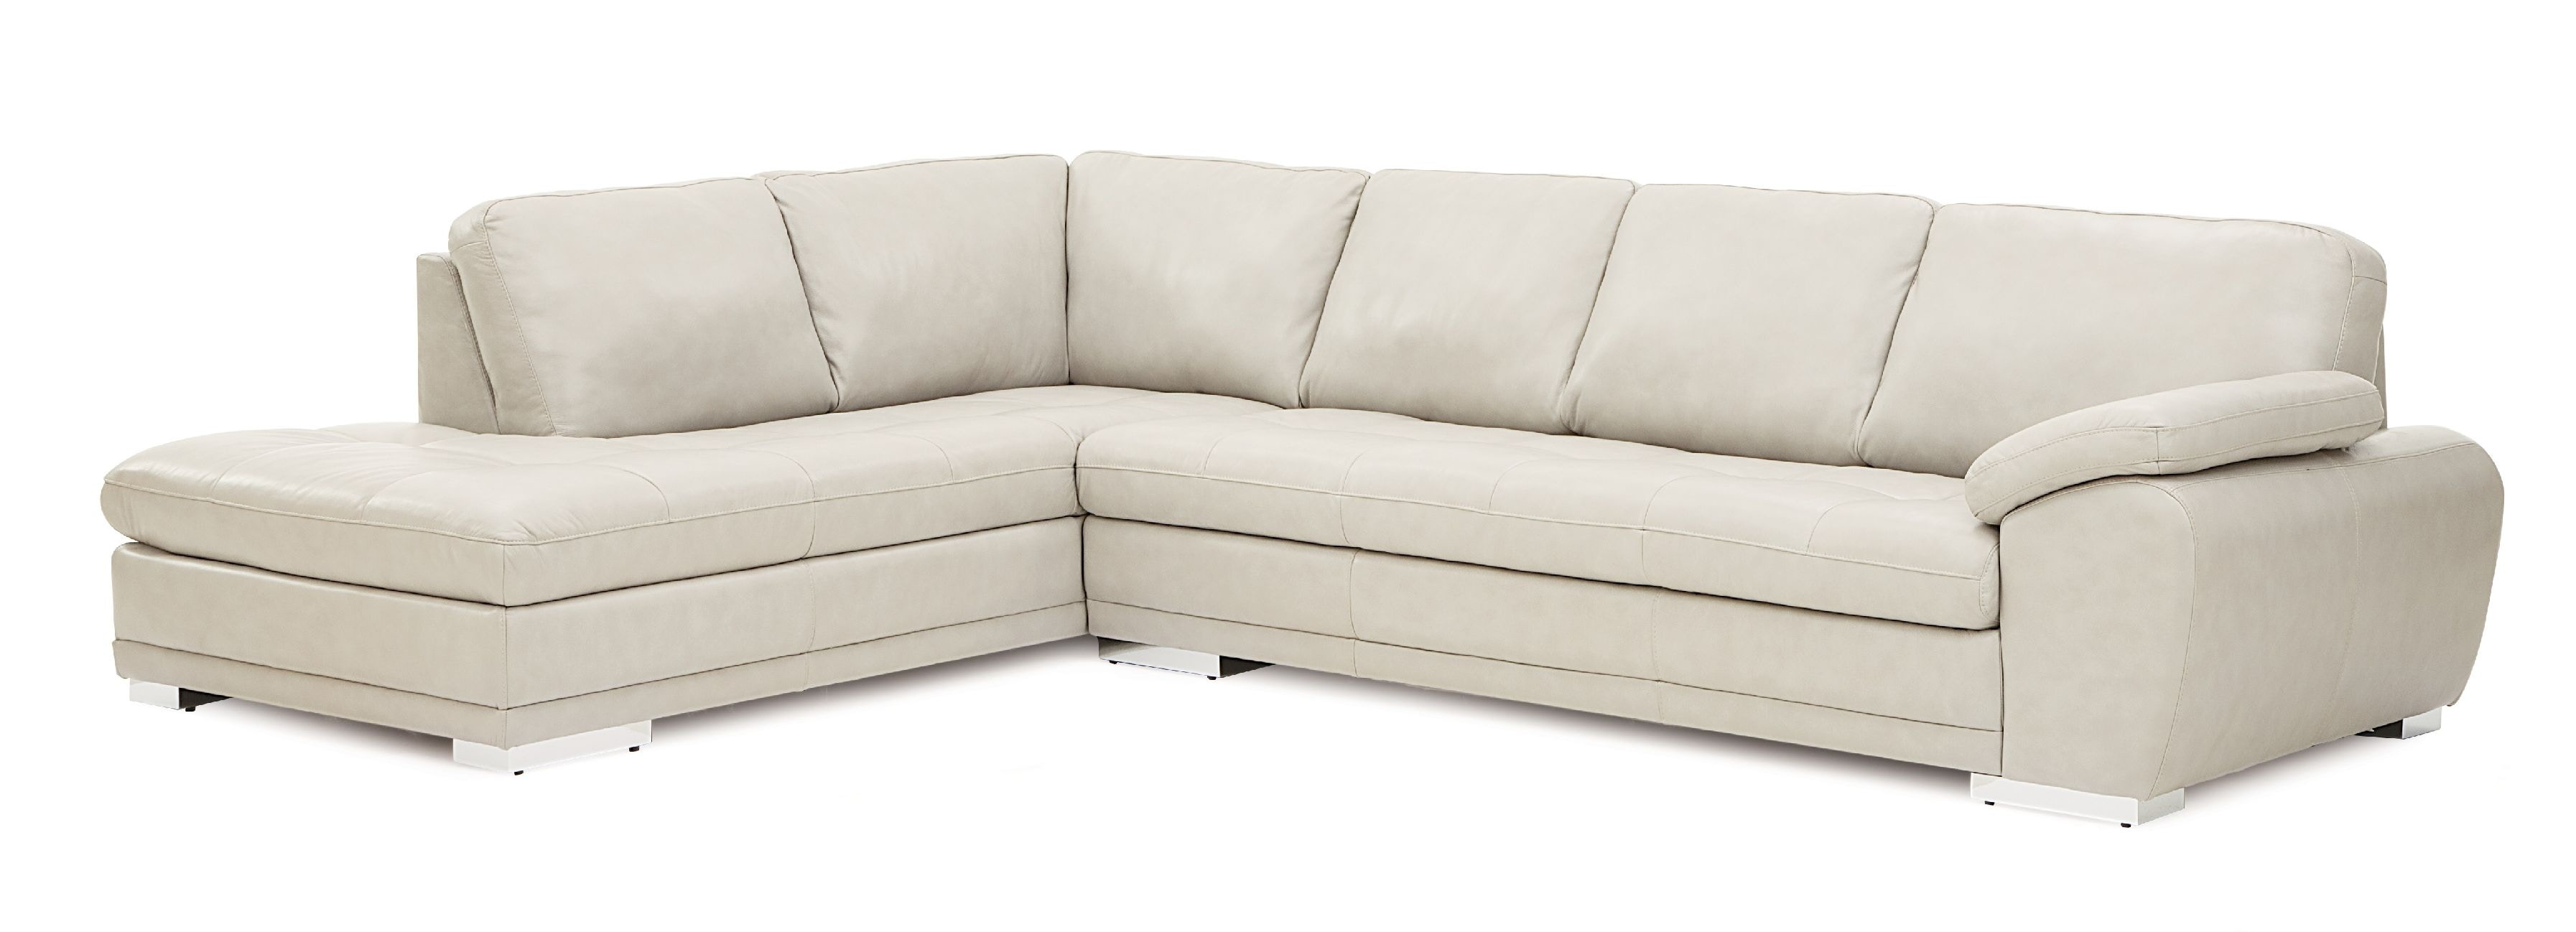 77319 Sectional